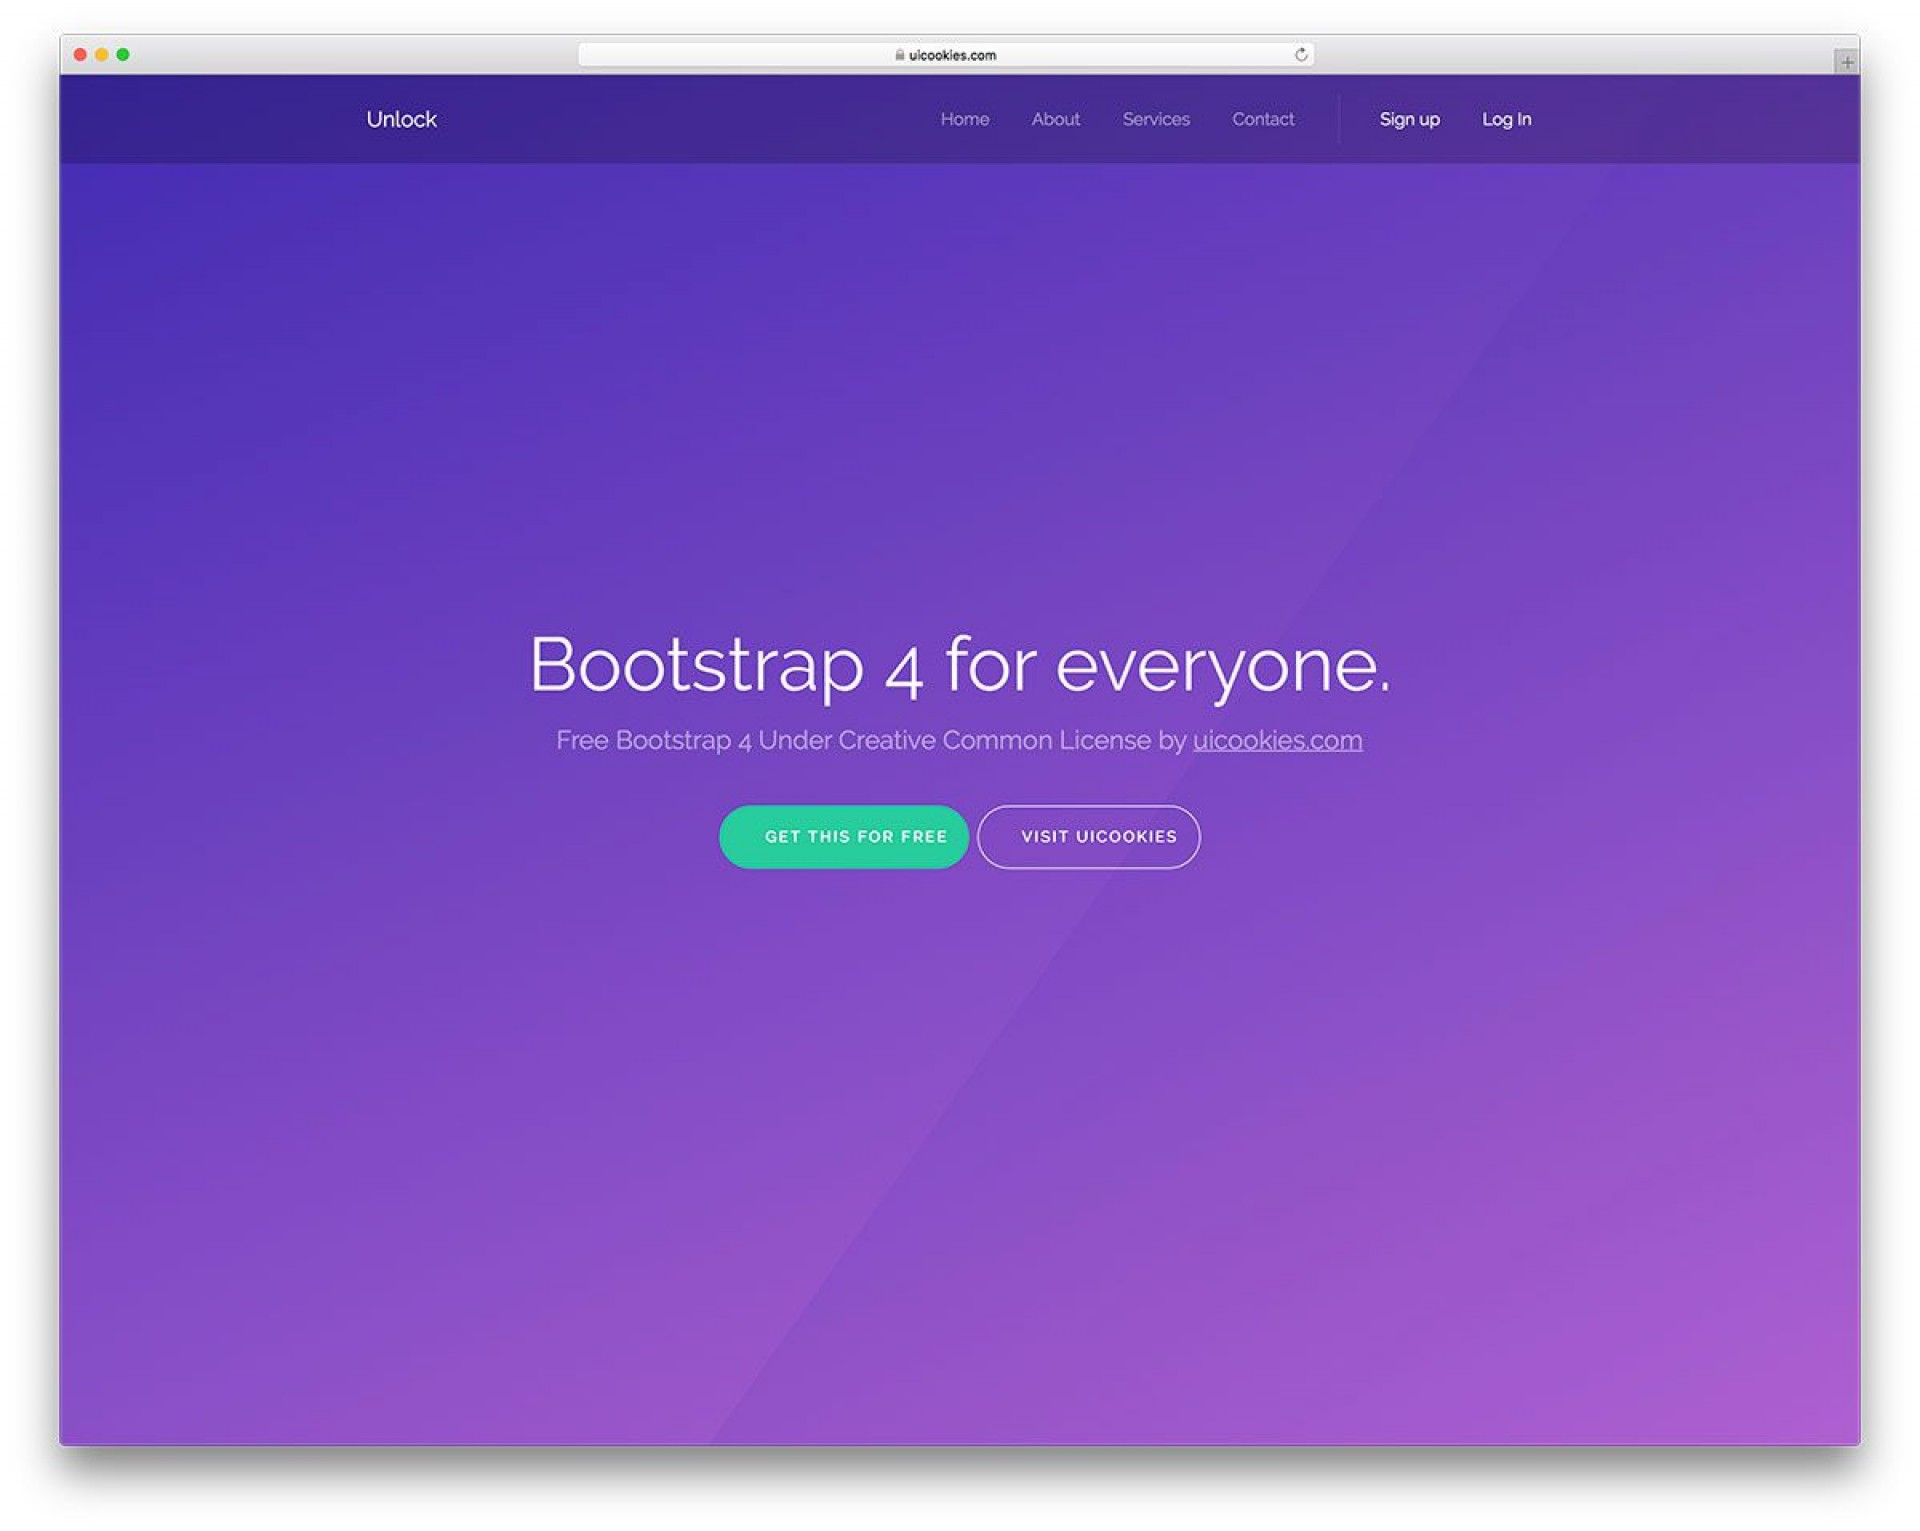 009 Marvelou Free Bootstrap Website Template Picture  Templates Responsive With Slider Download For Education Busines1920